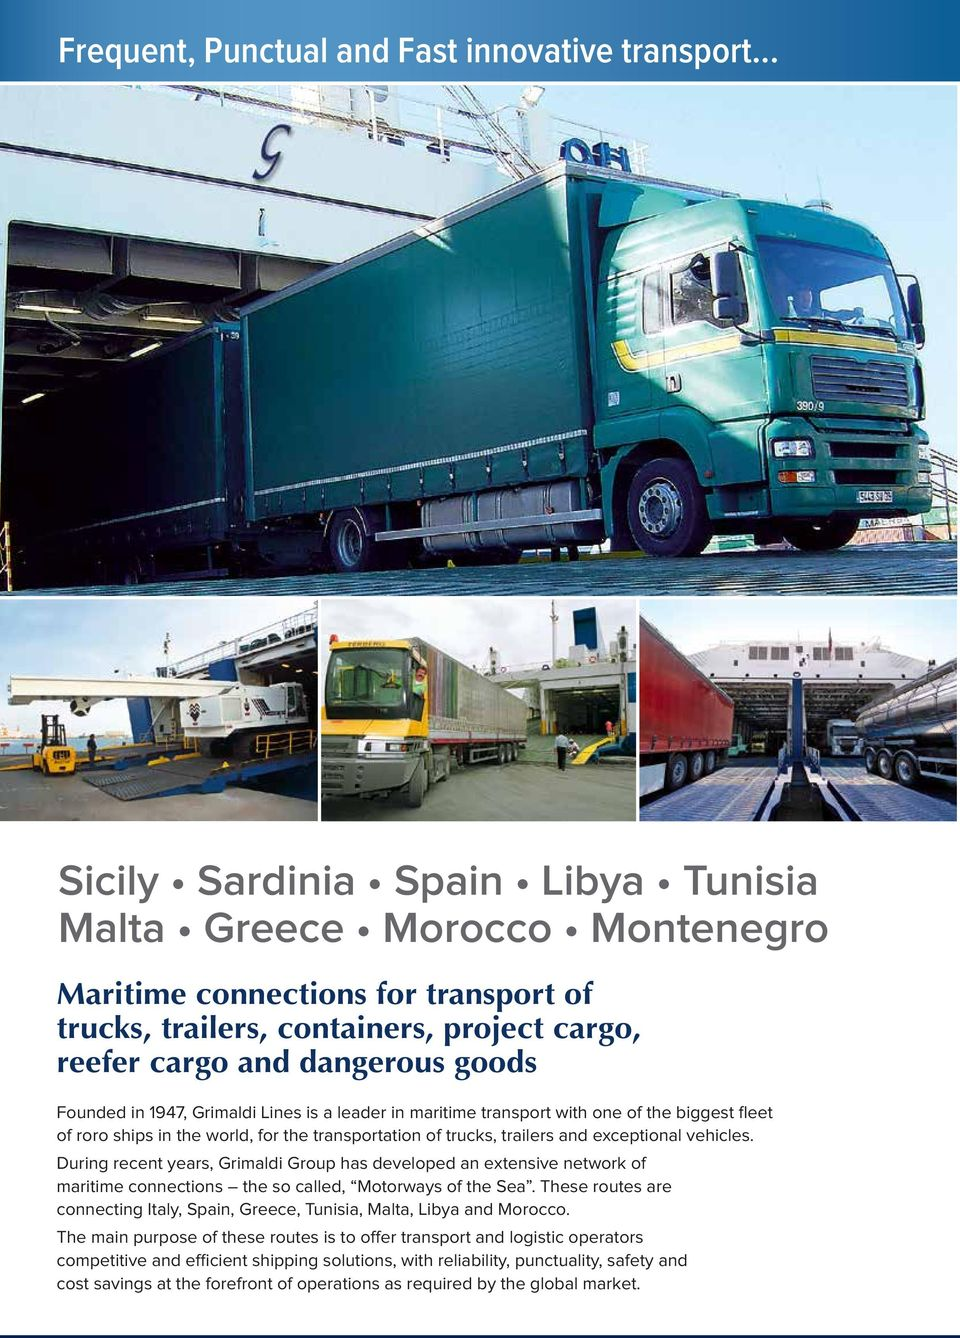 Grimaldi Lines is a leader in maritime transport with one of the biggest fleet of roro ships in the world, for the transportation of trucks, trailers and eceptional vehicles.